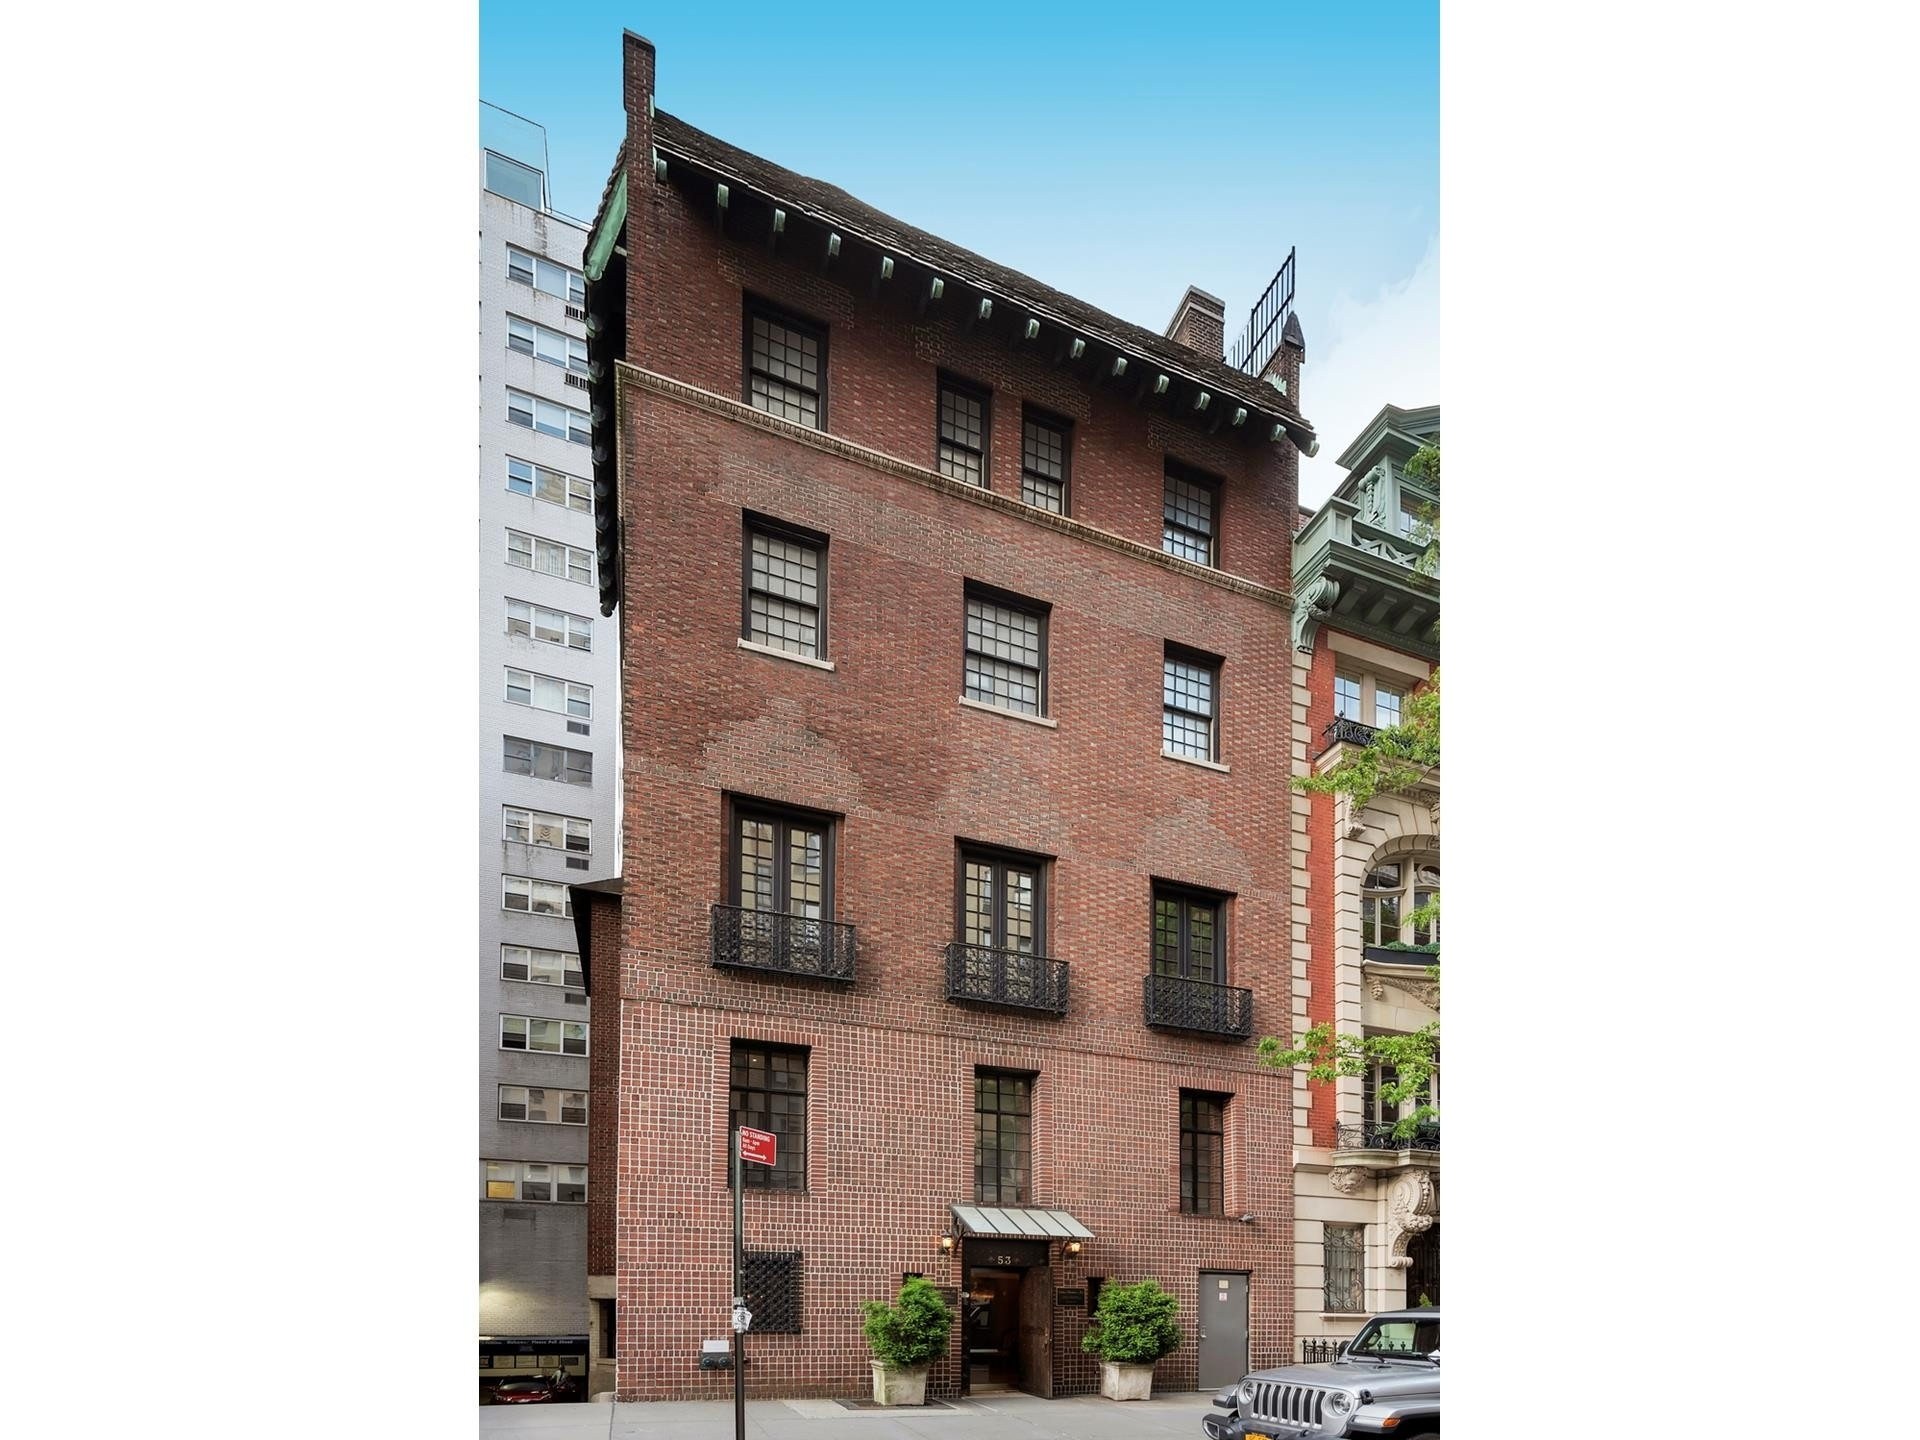 Multi Family Townhouse for Sale at Upper East Side, New York, NY 10021